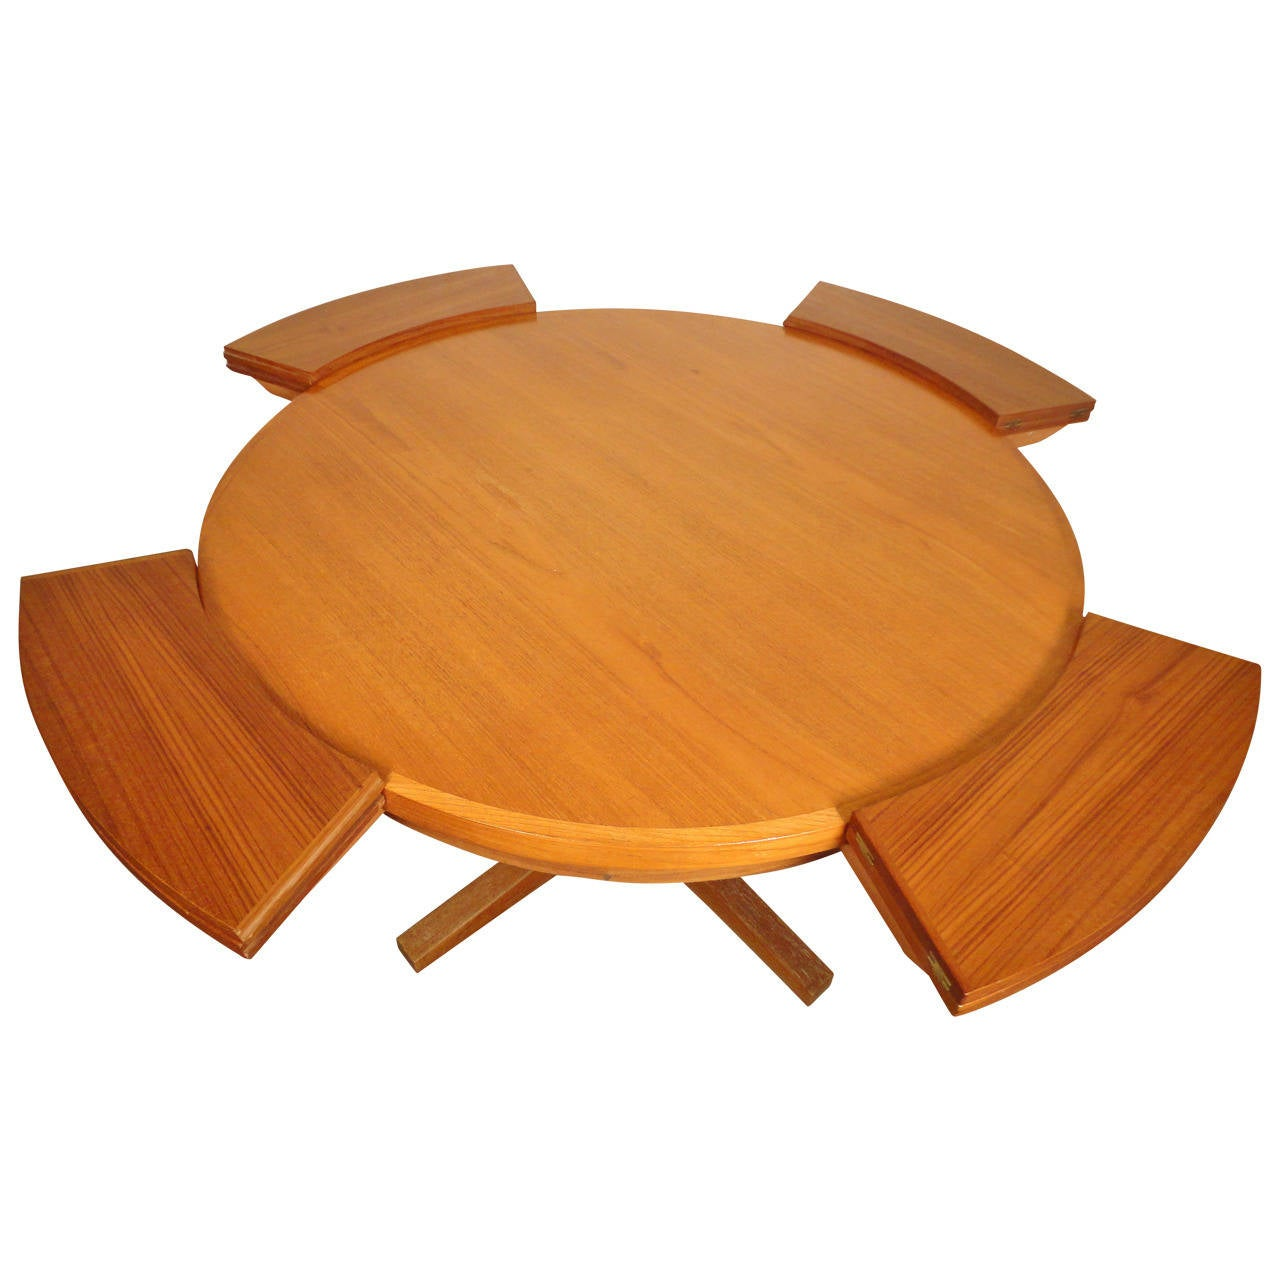 Exceptional Mid-Century Extending Table by Dyrlund